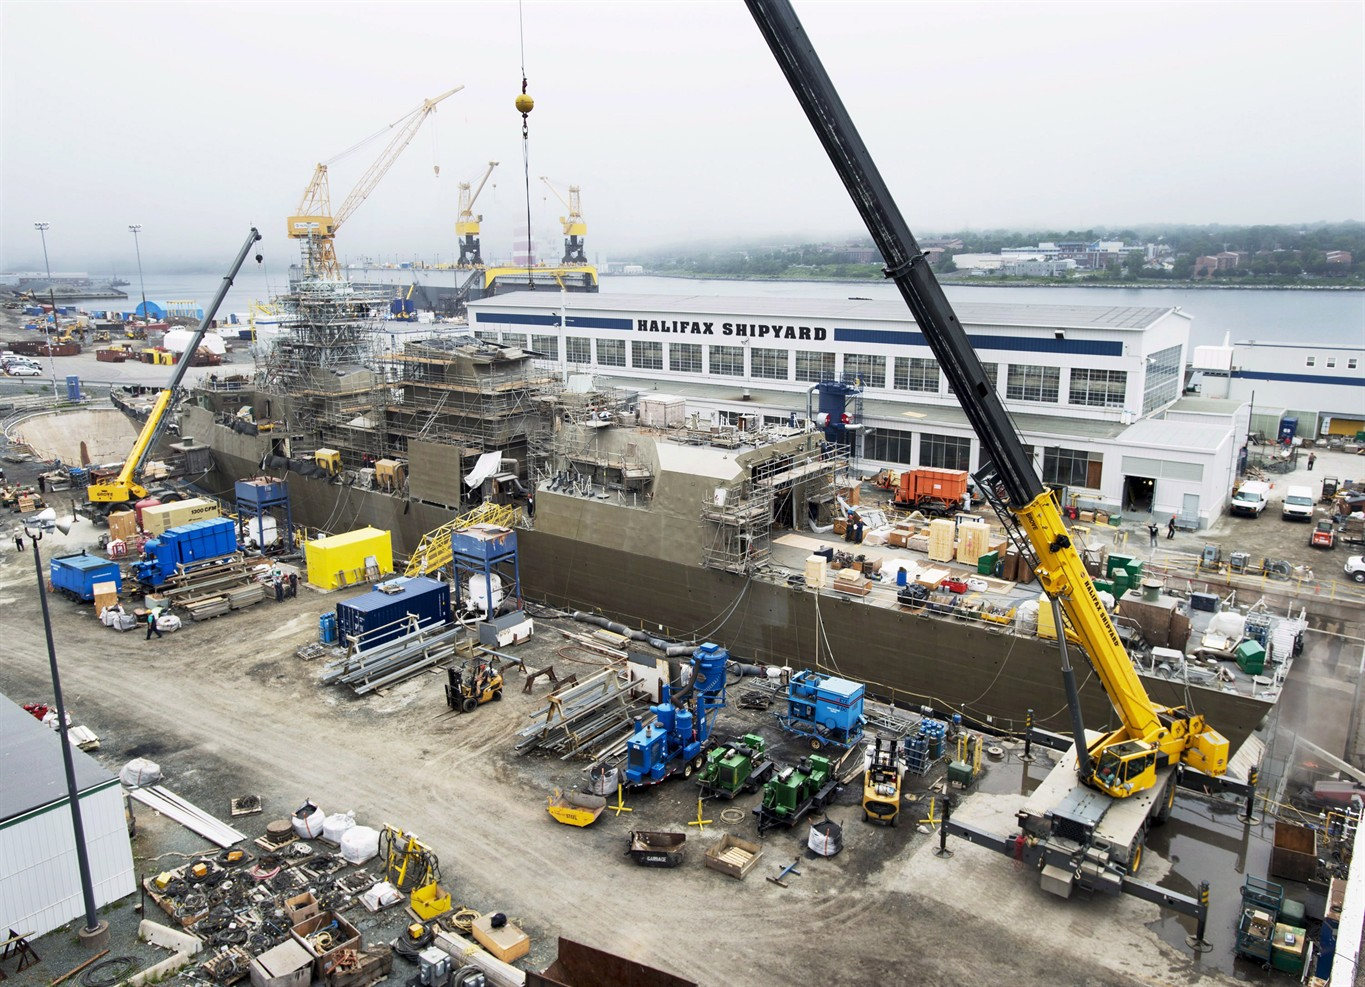 Irving Shipbuilding Defends Decision To Bring In International